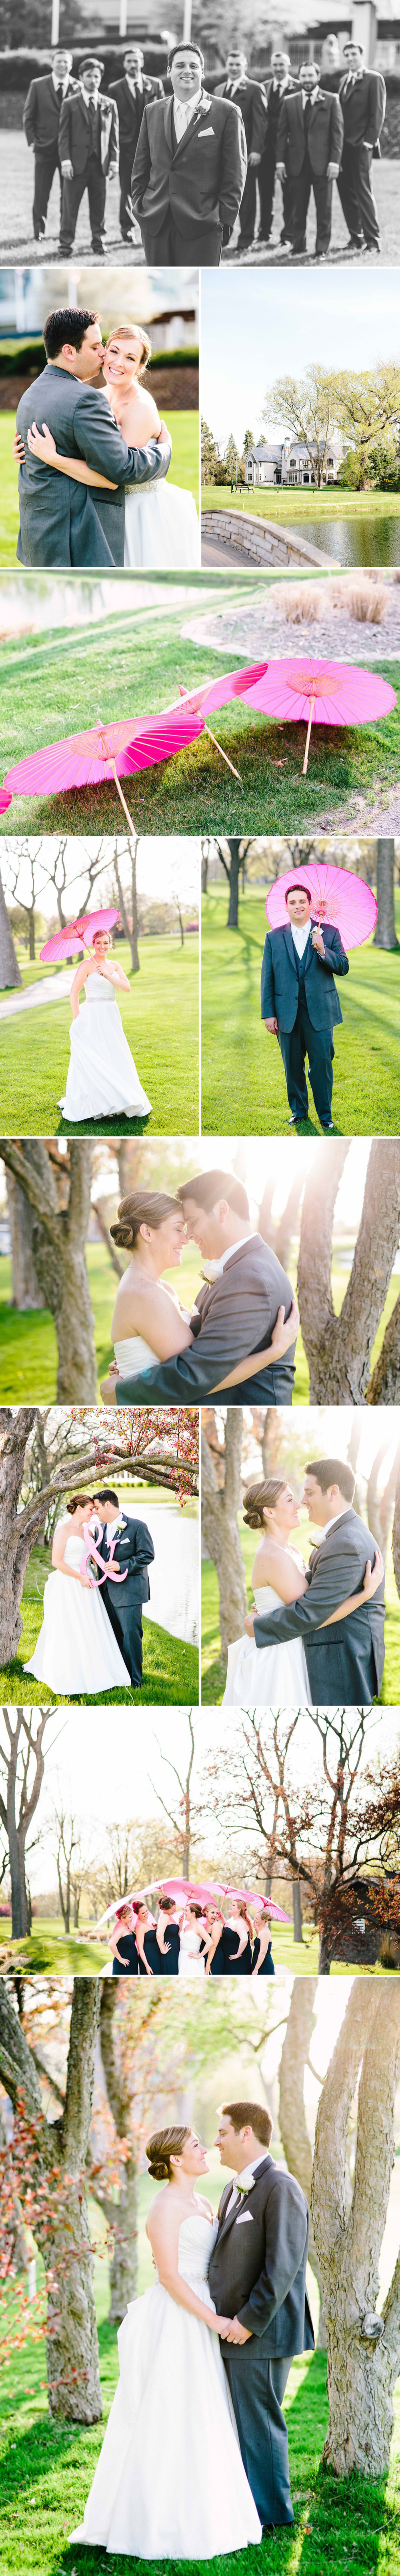 chicago-fine-art-wedding-photography-rytych6